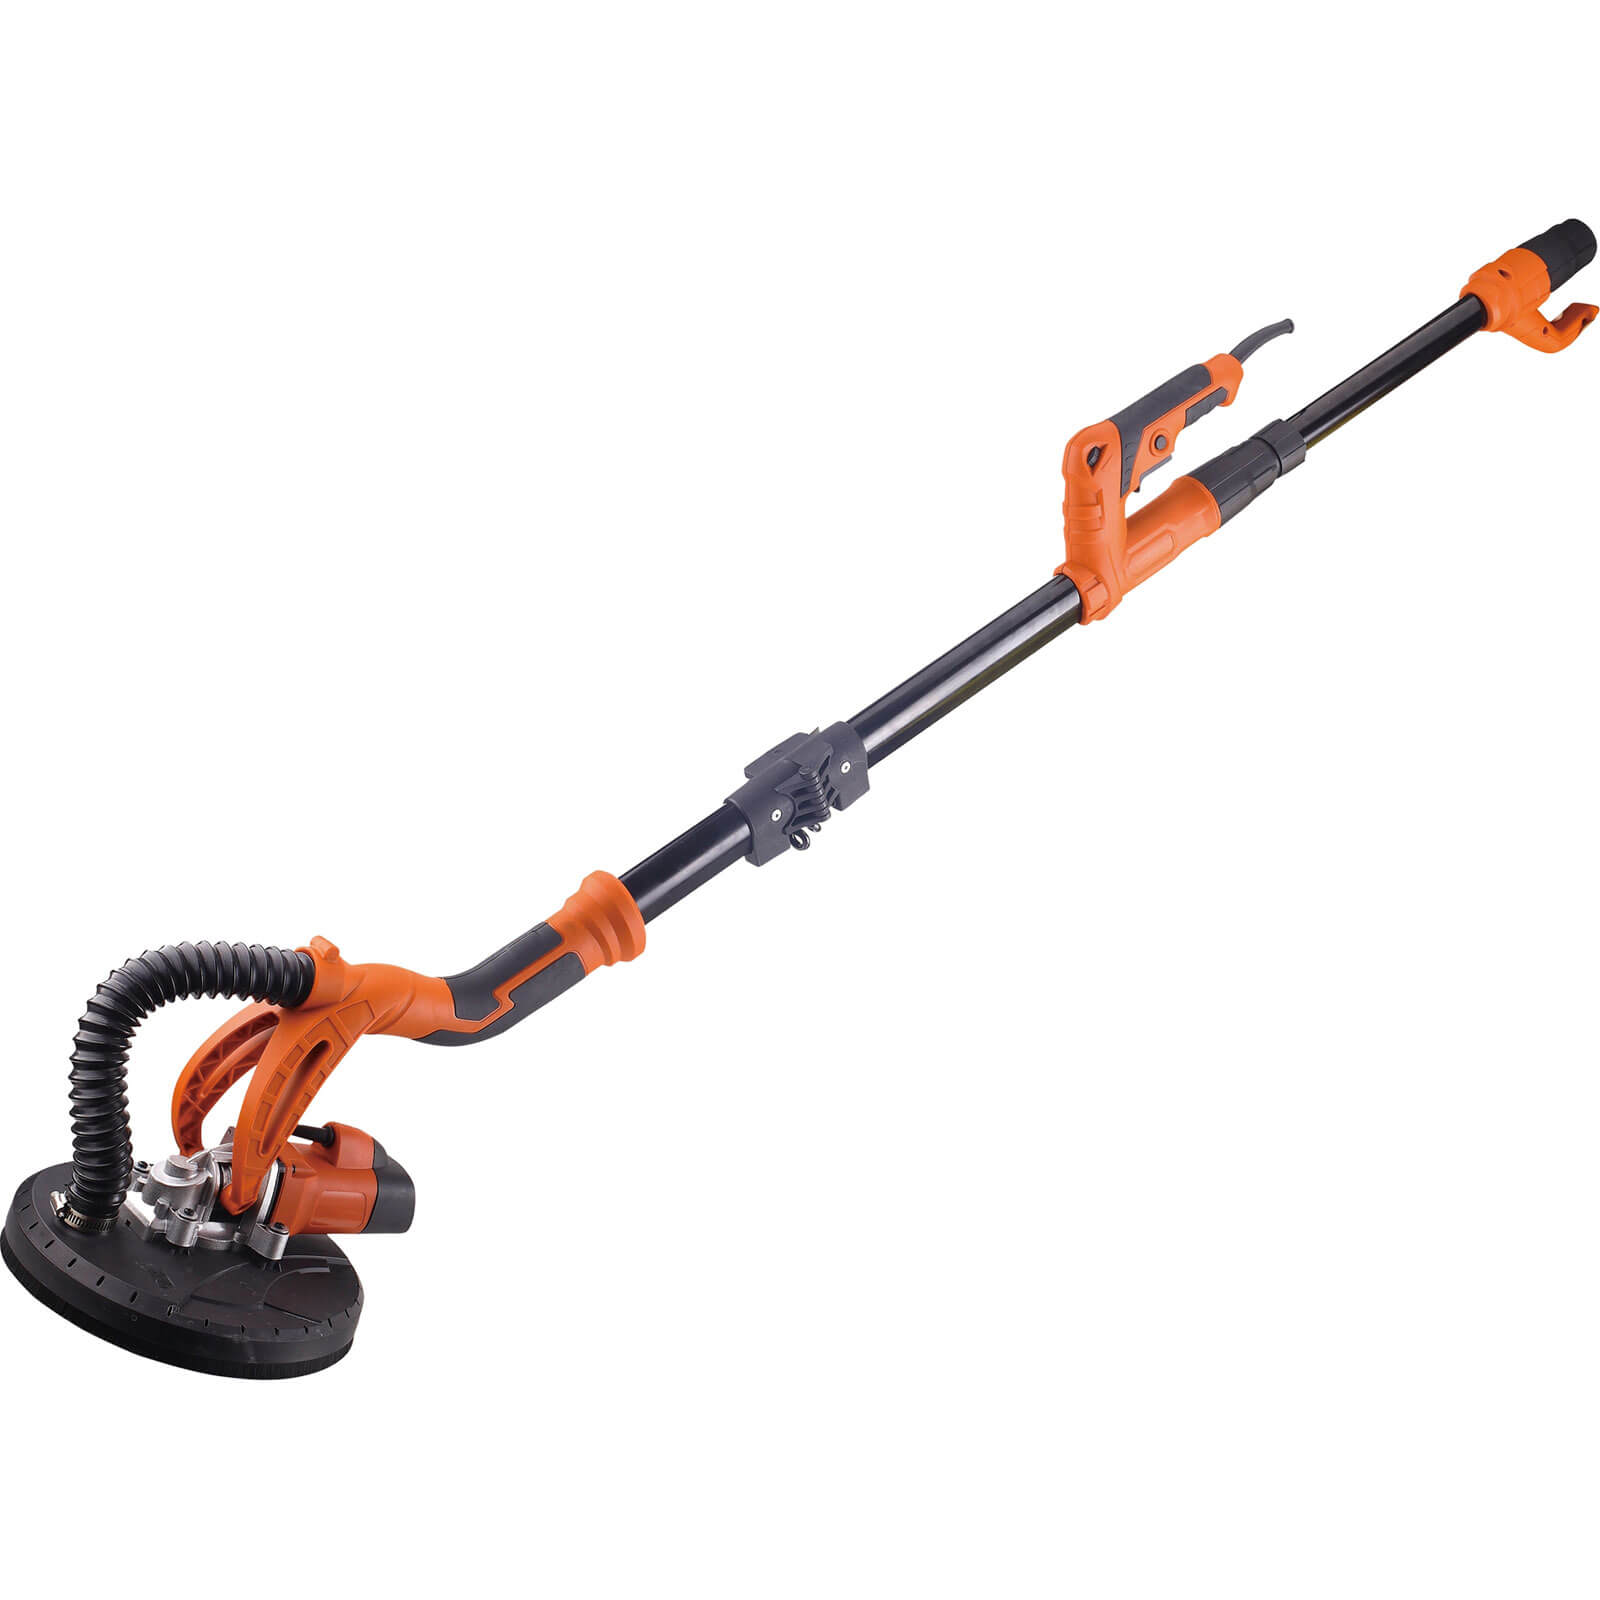 Image of Vitrex LRS700 Long Reach Drywall Sander 240v